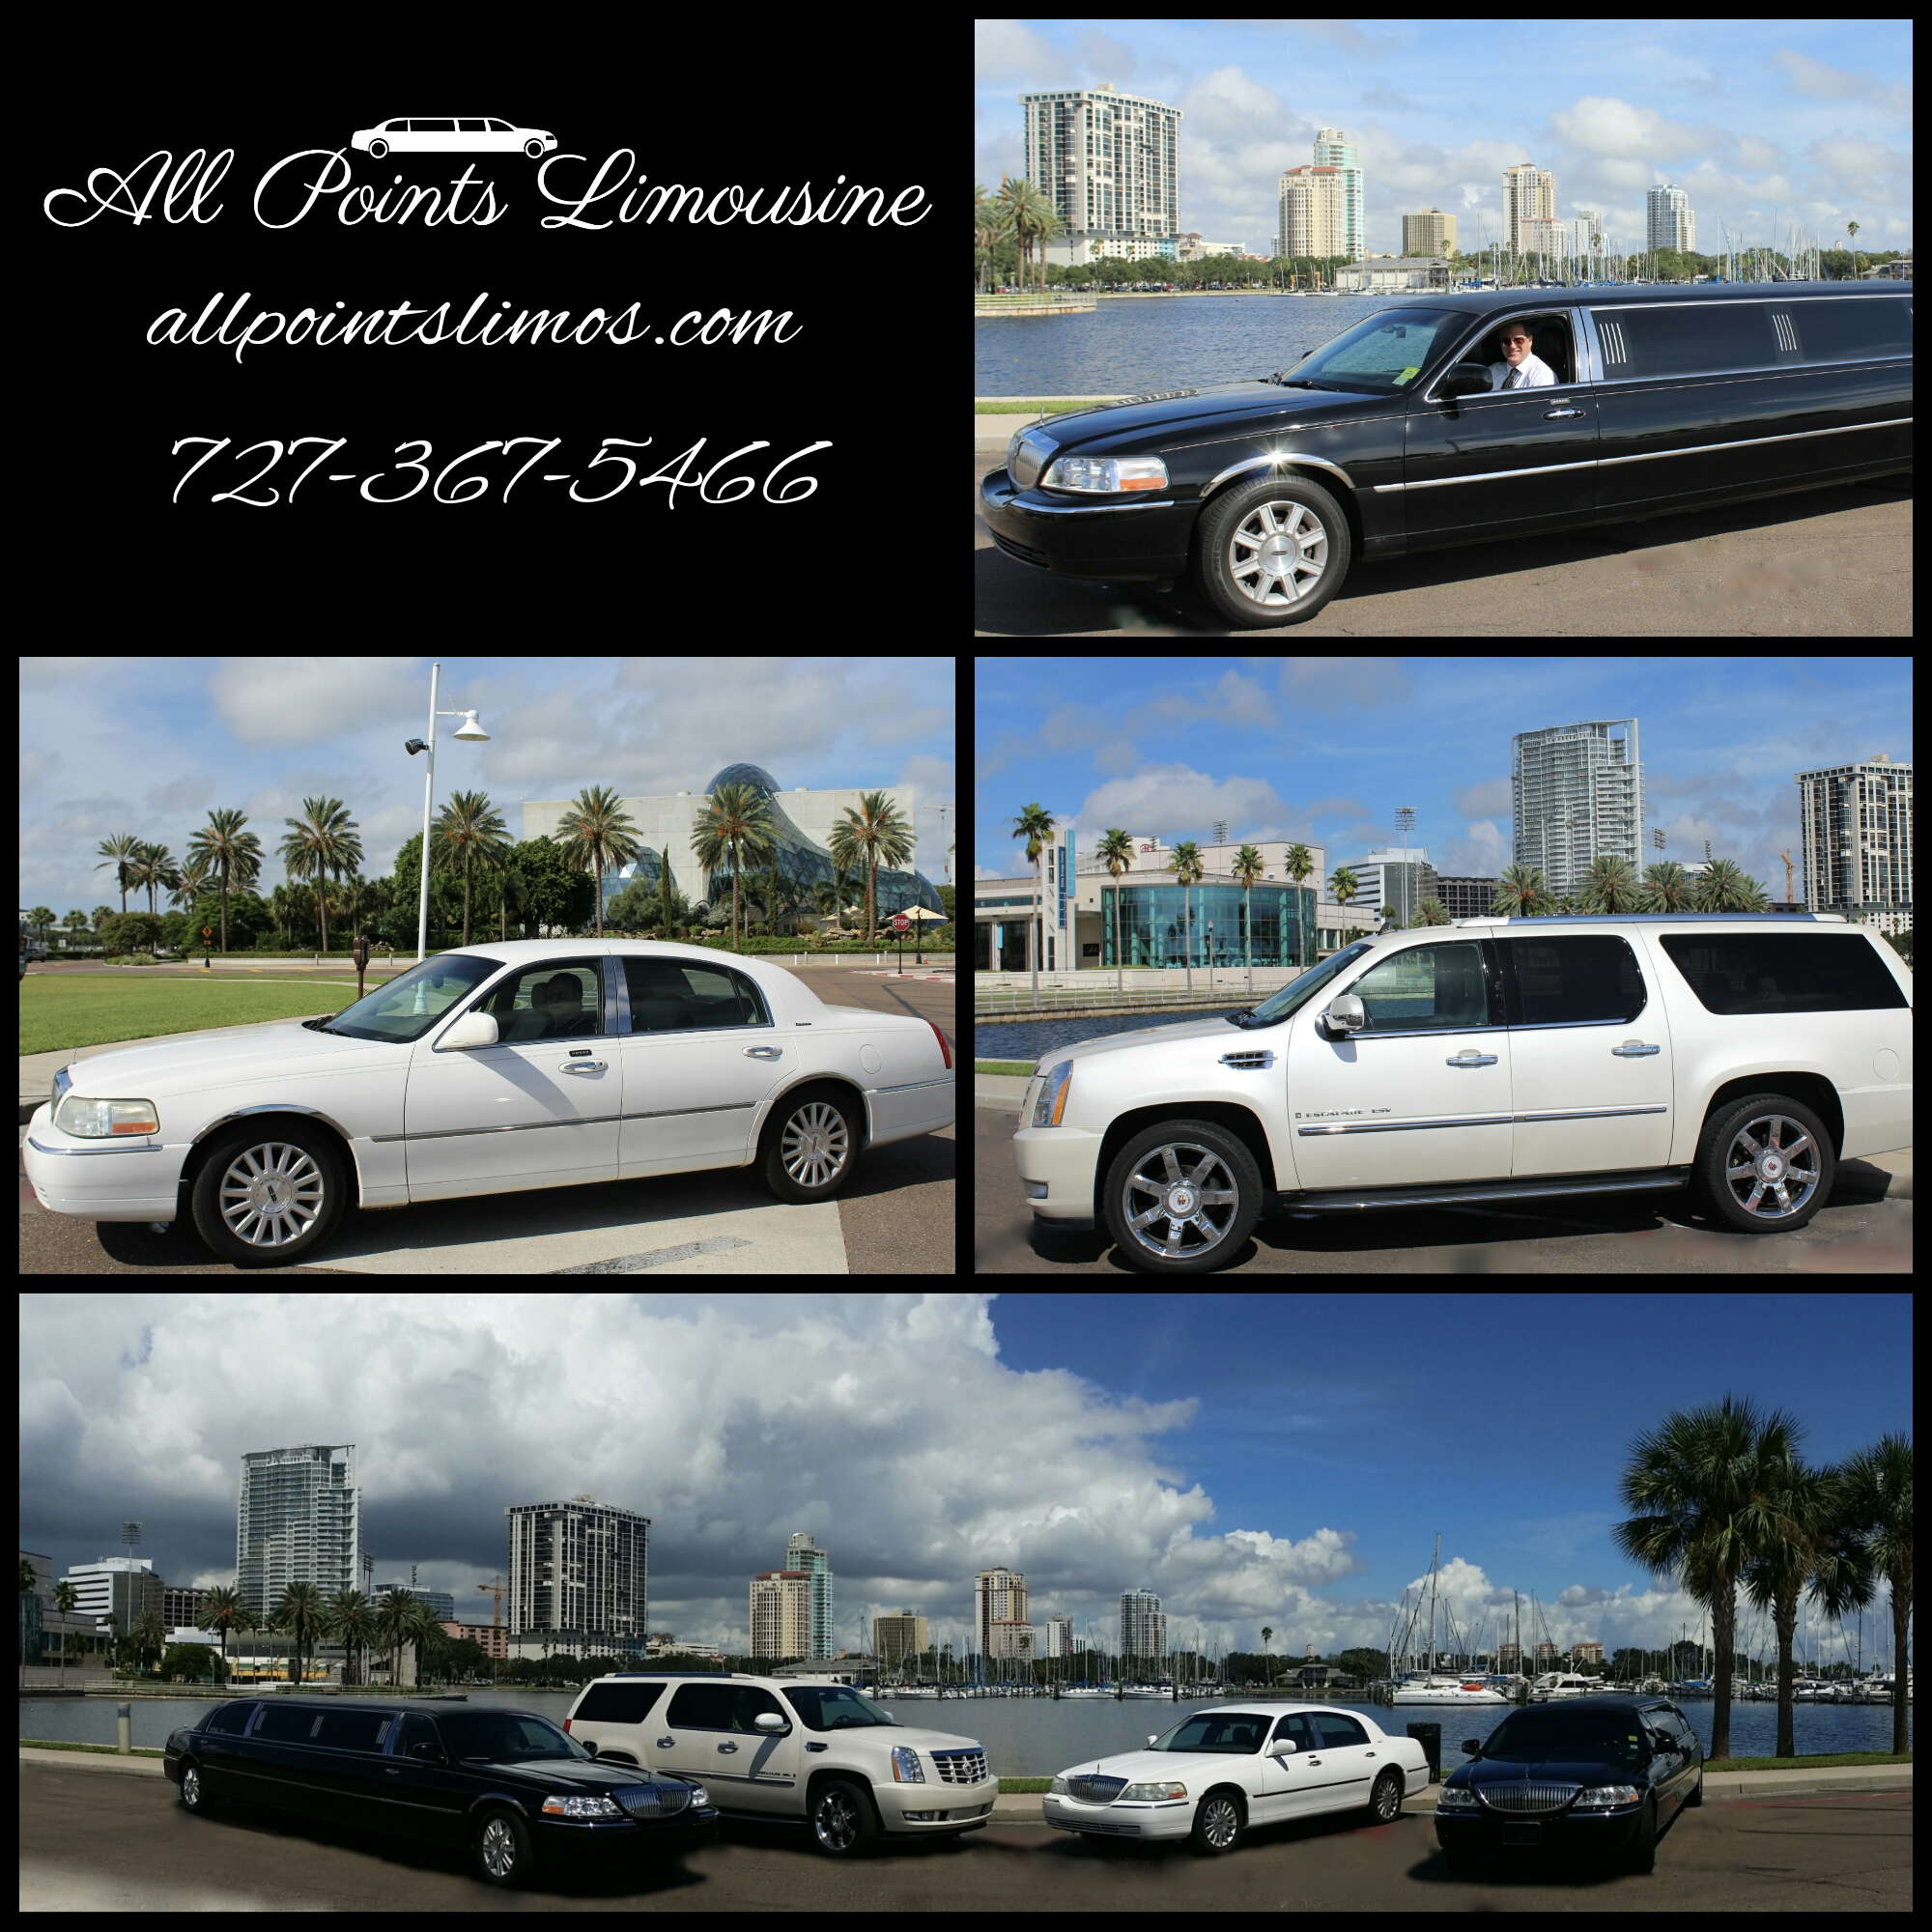 St. Petersburg limousine fleet